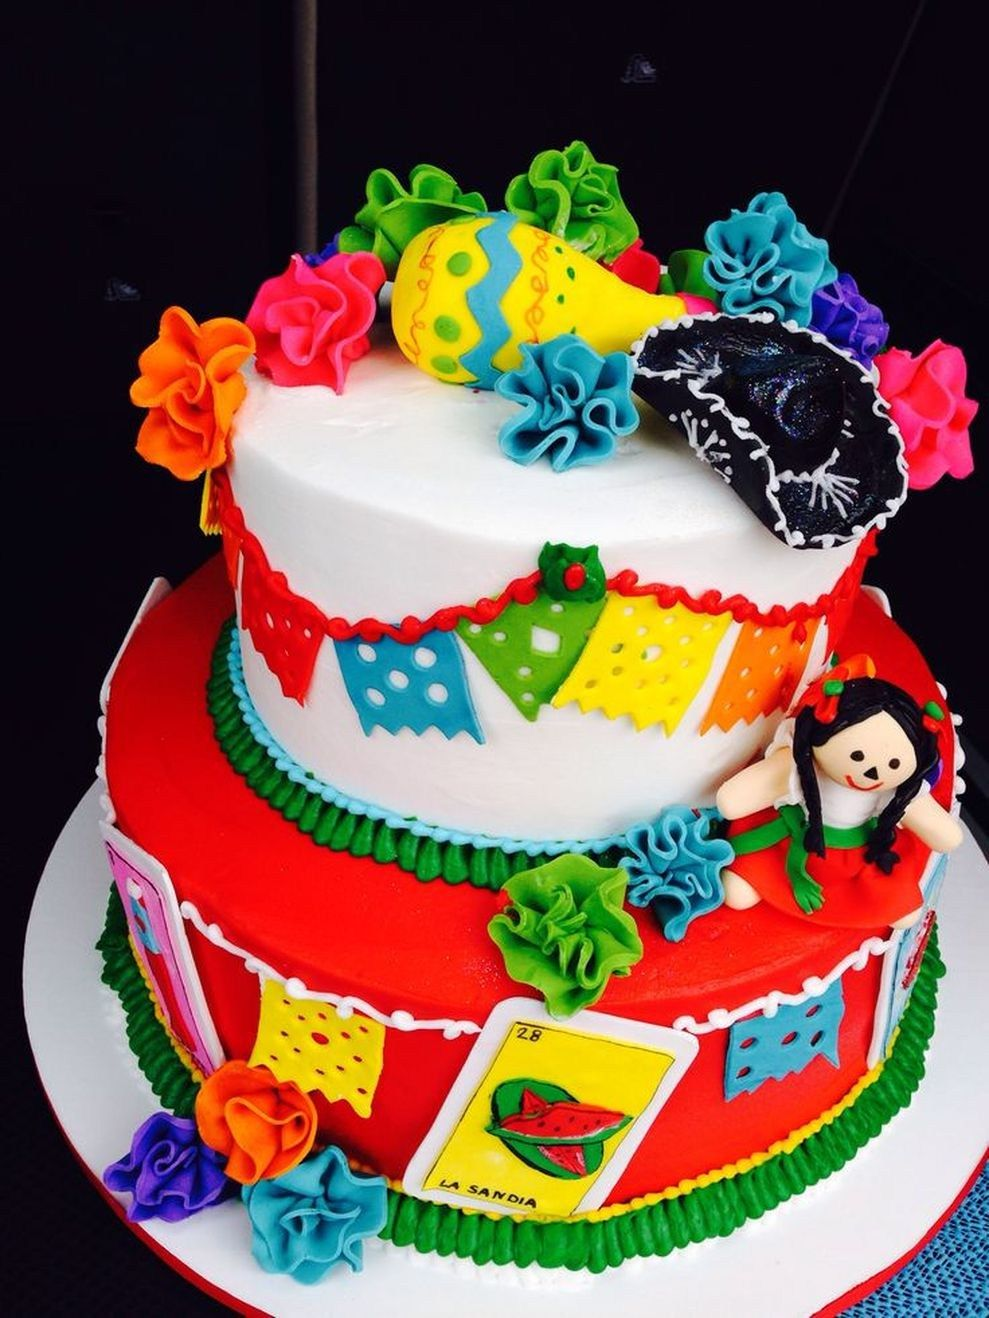 83 MexicanThemed Wedding Cakes for Your Inspiration